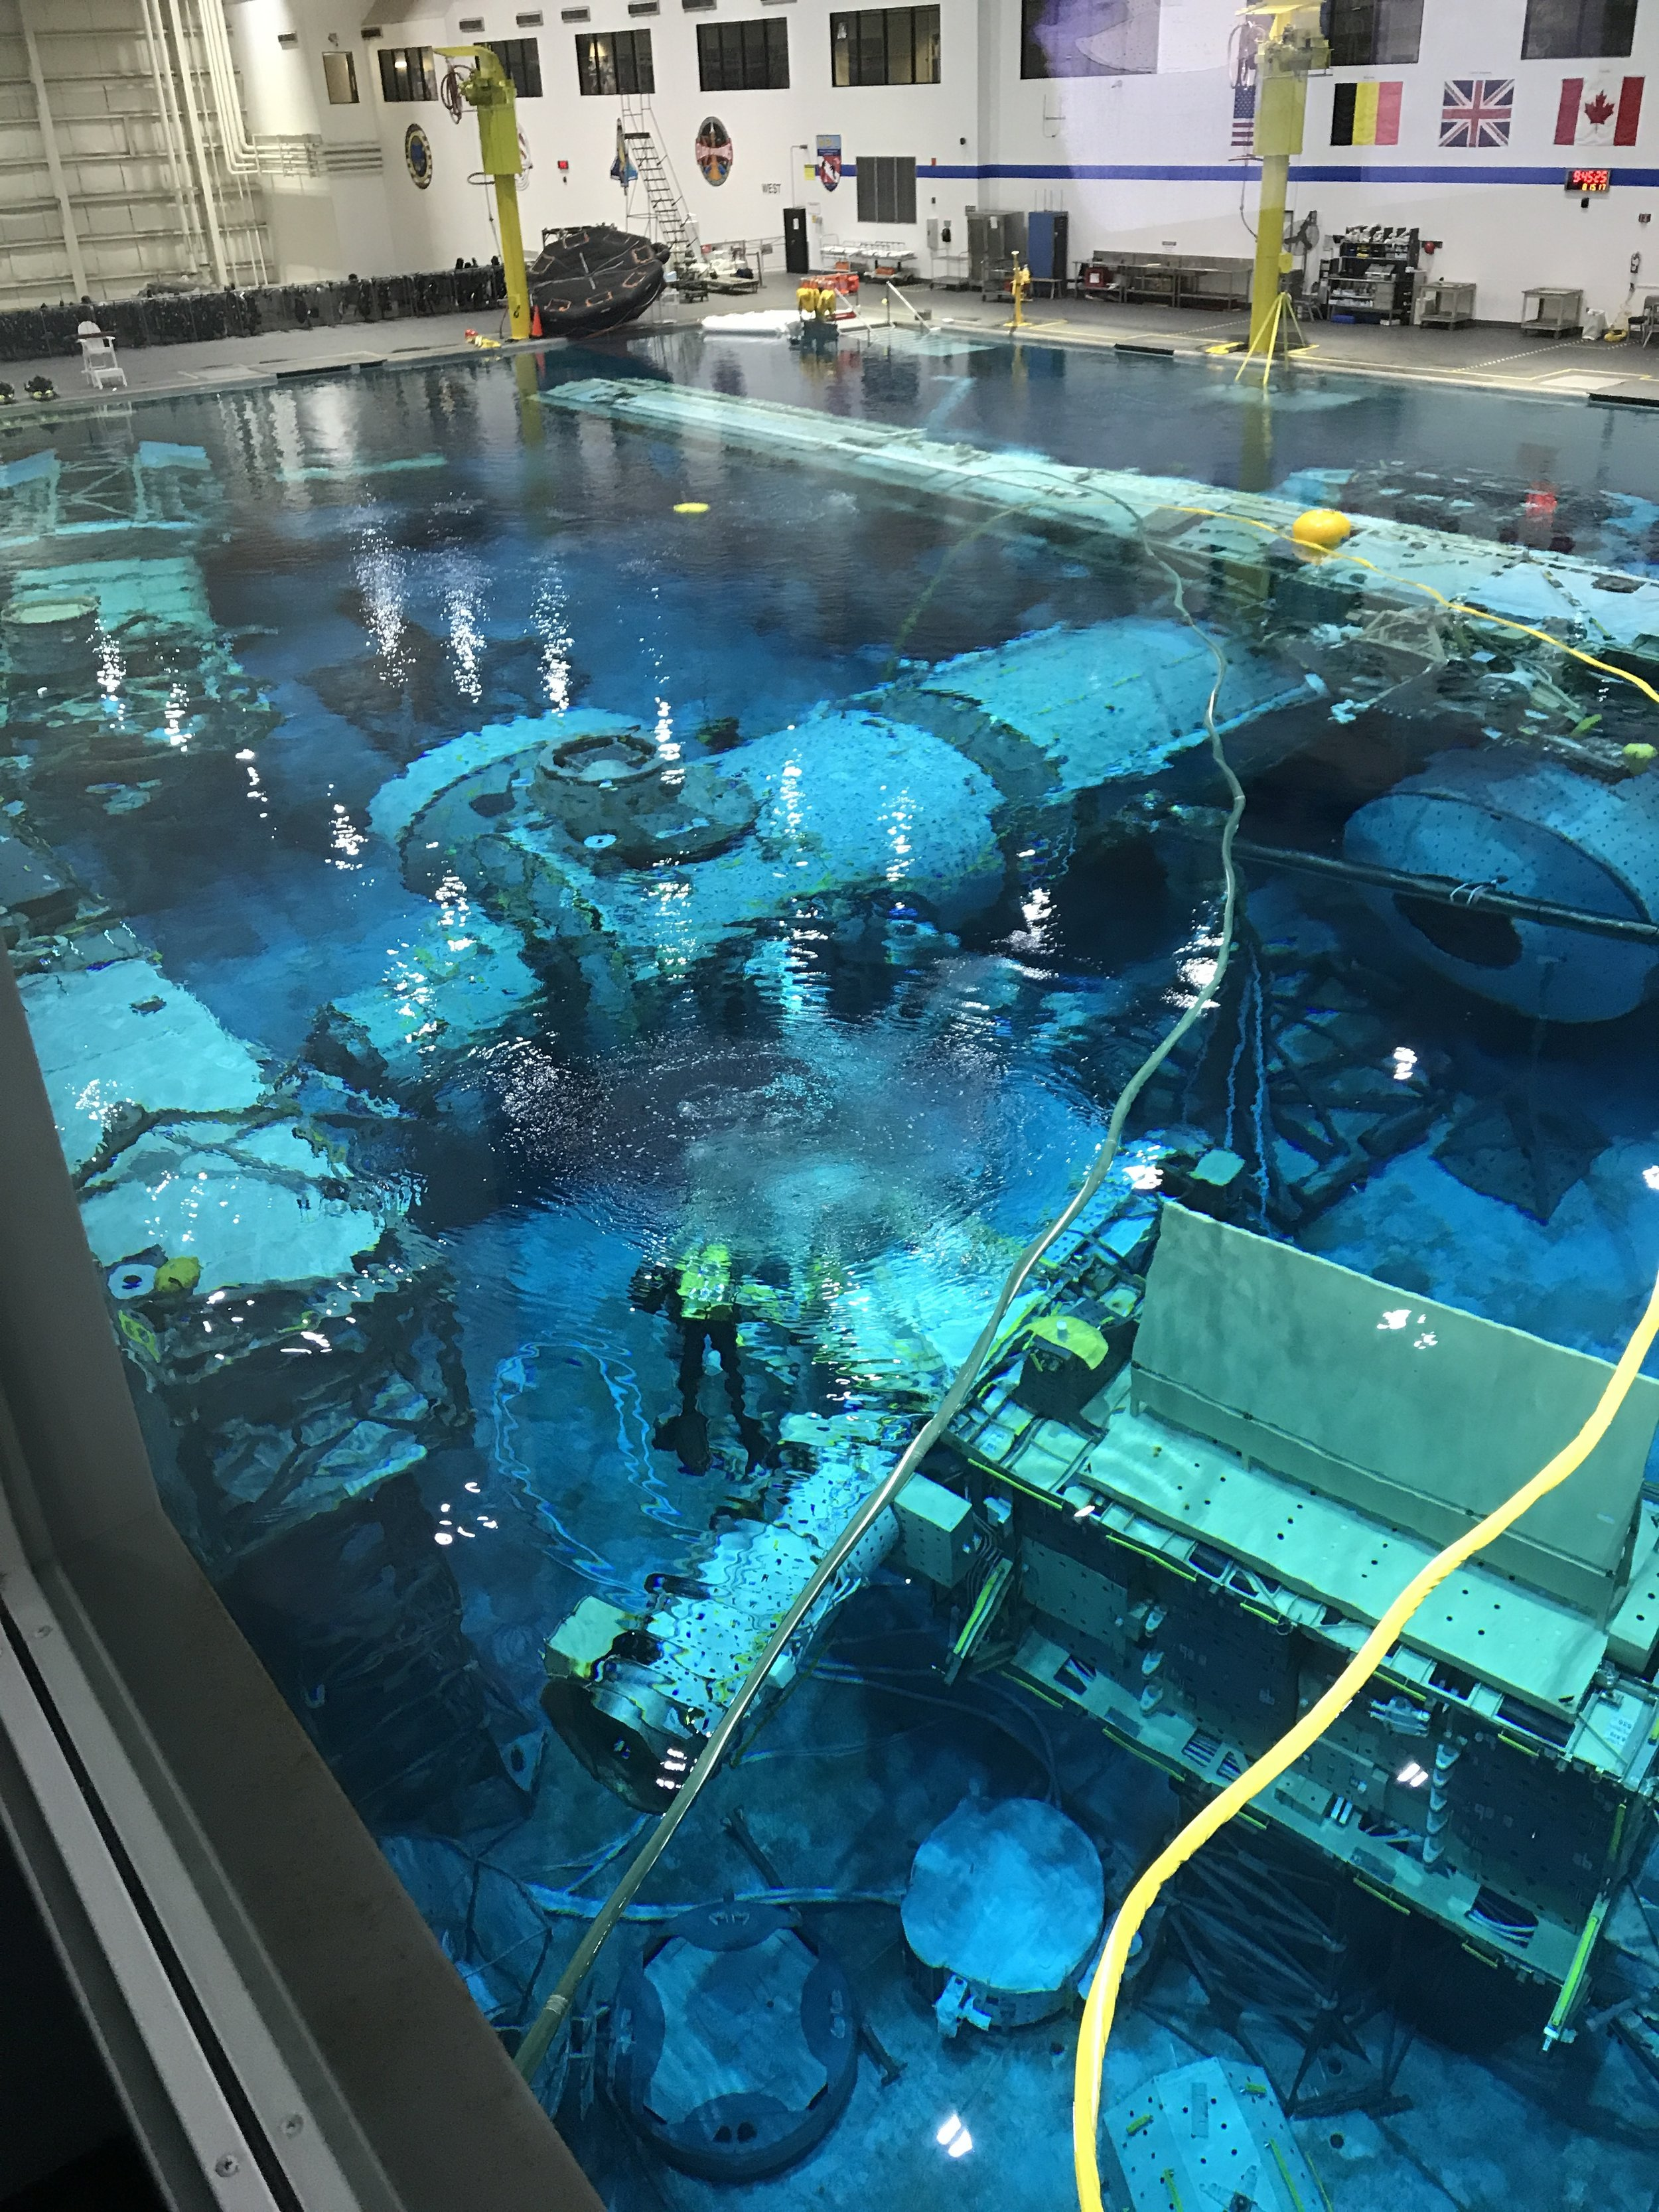 Divers are seen positioning equipment in the massive pool which is over 40 feet deep.